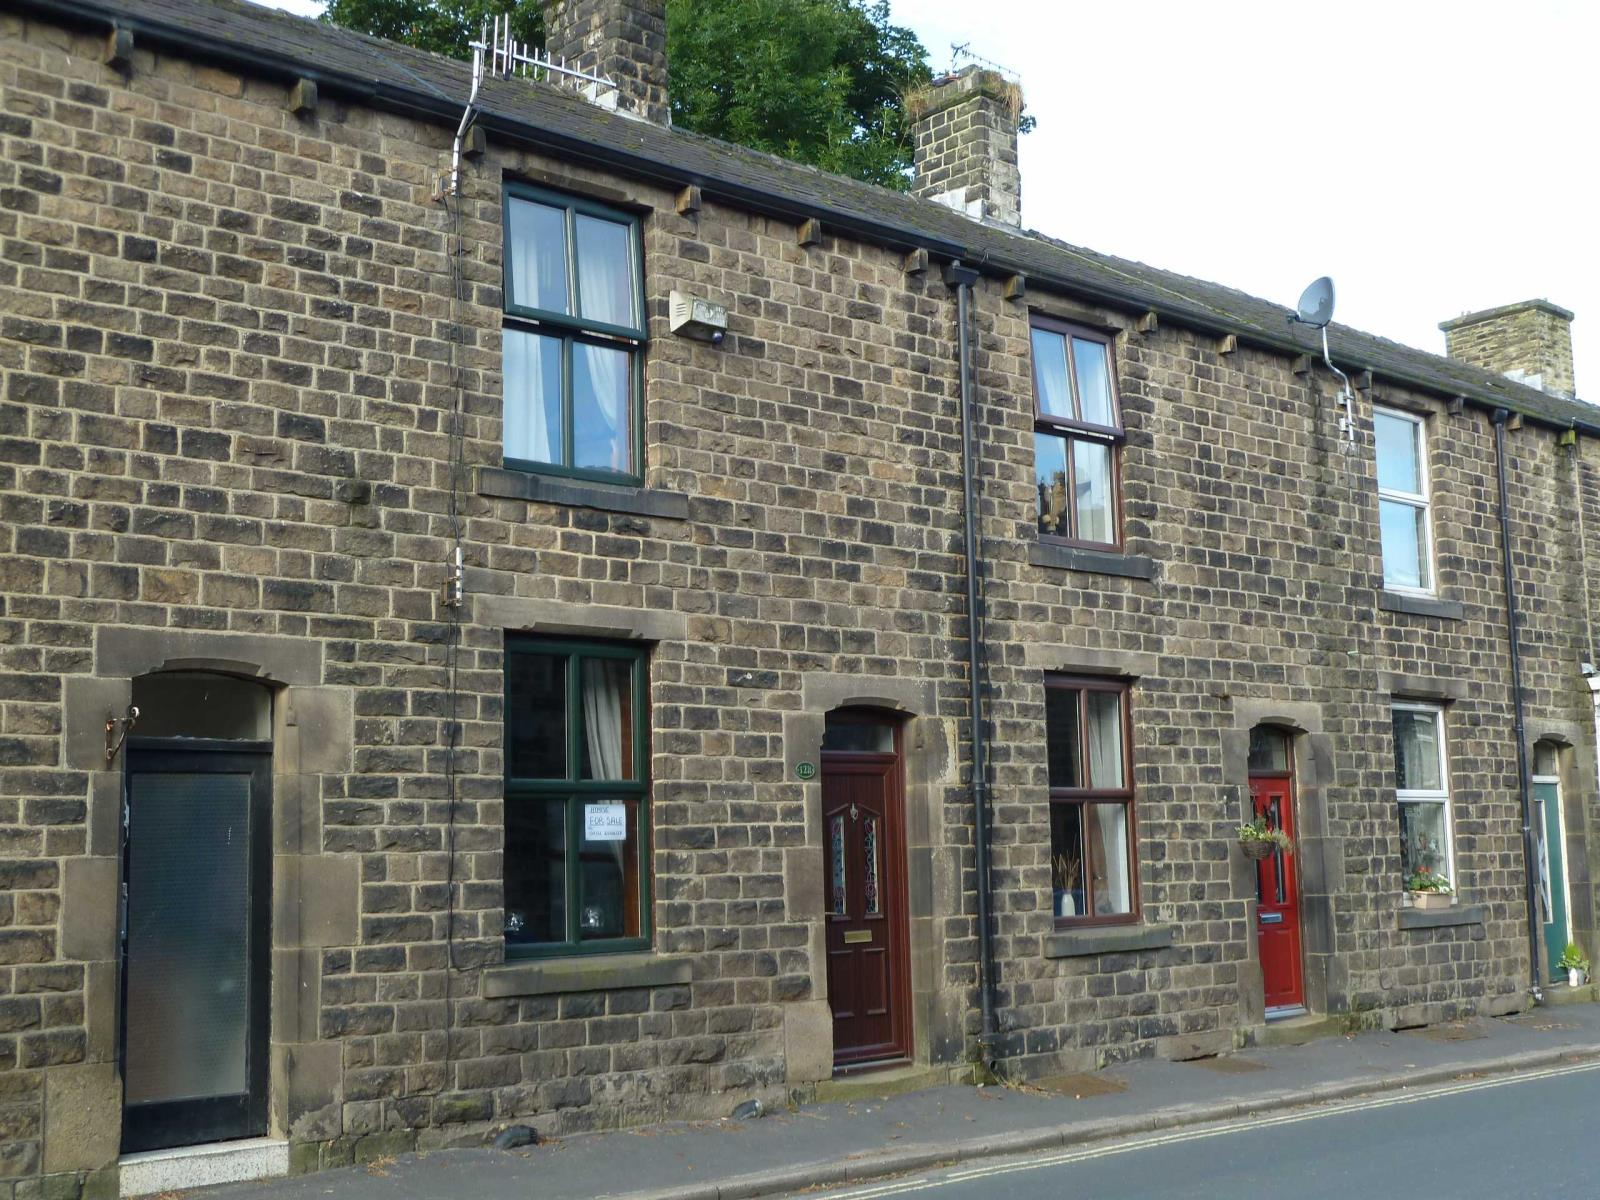 2 Bedrooms Terraced House for sale in Chew Valley Road, Greenfield, Saddleworth, OL3